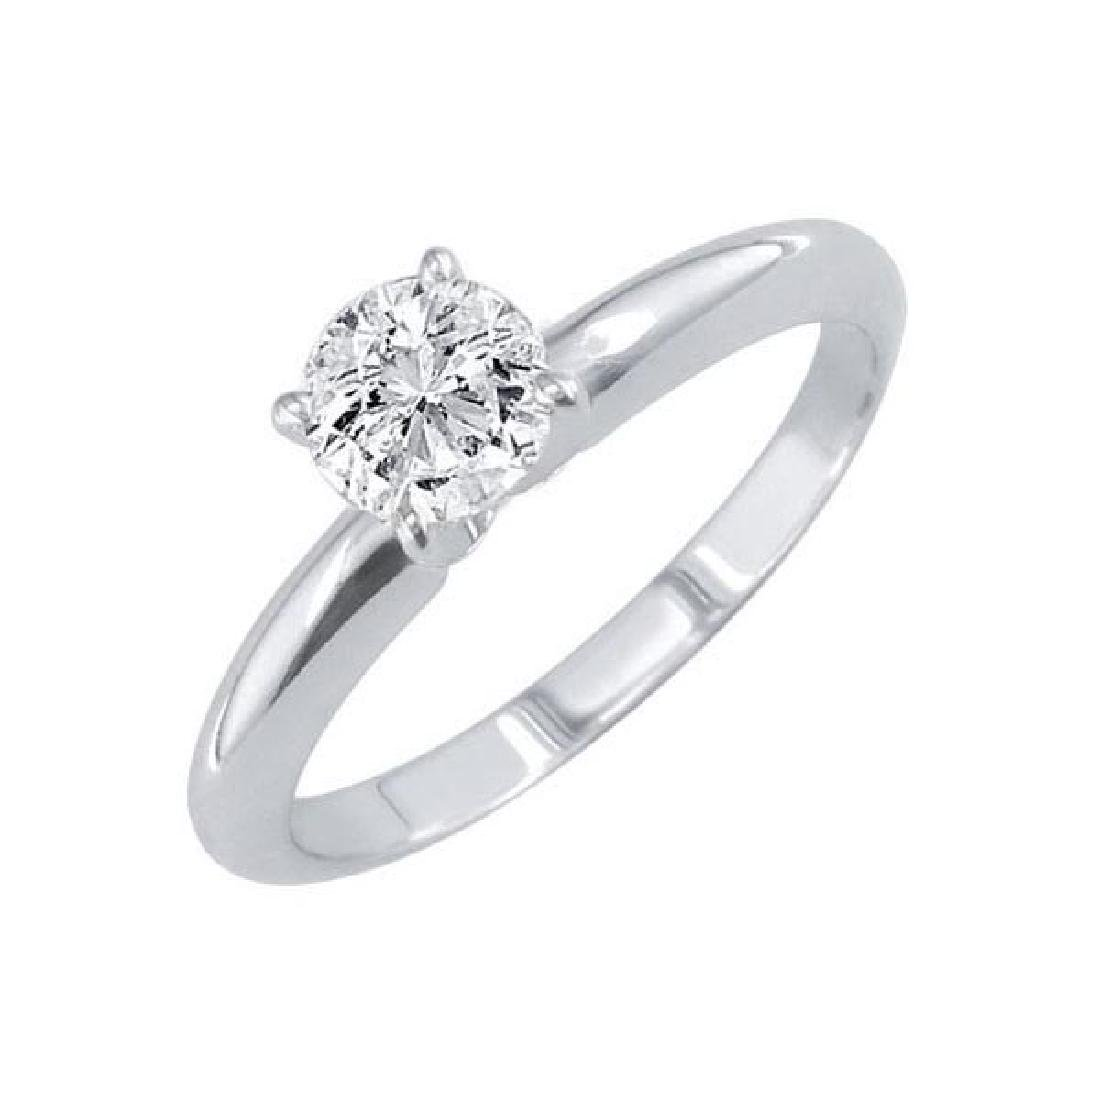 Certified 0.42 CTW Round Diamond Solitaire 14k Ring E/S